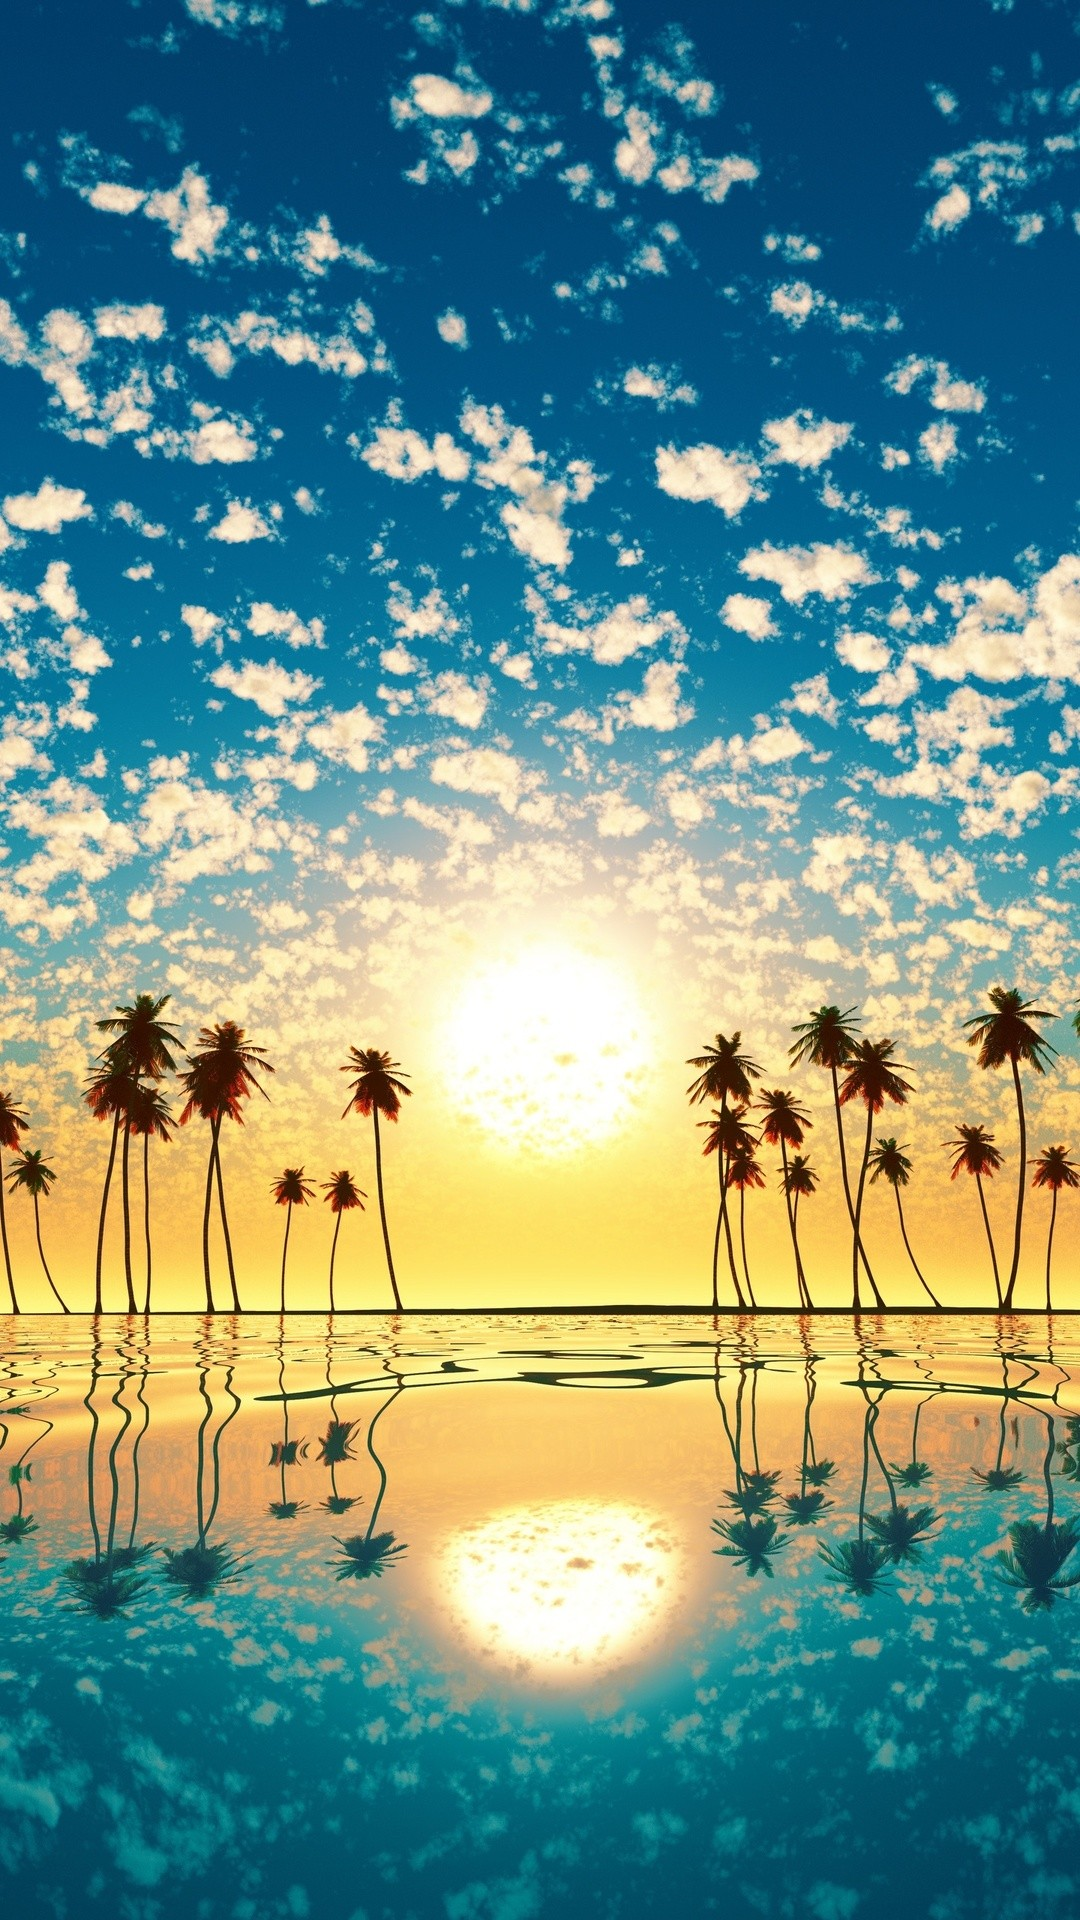 Palm Trees Reflection Sunset Cd Wallpaper 1080x1920